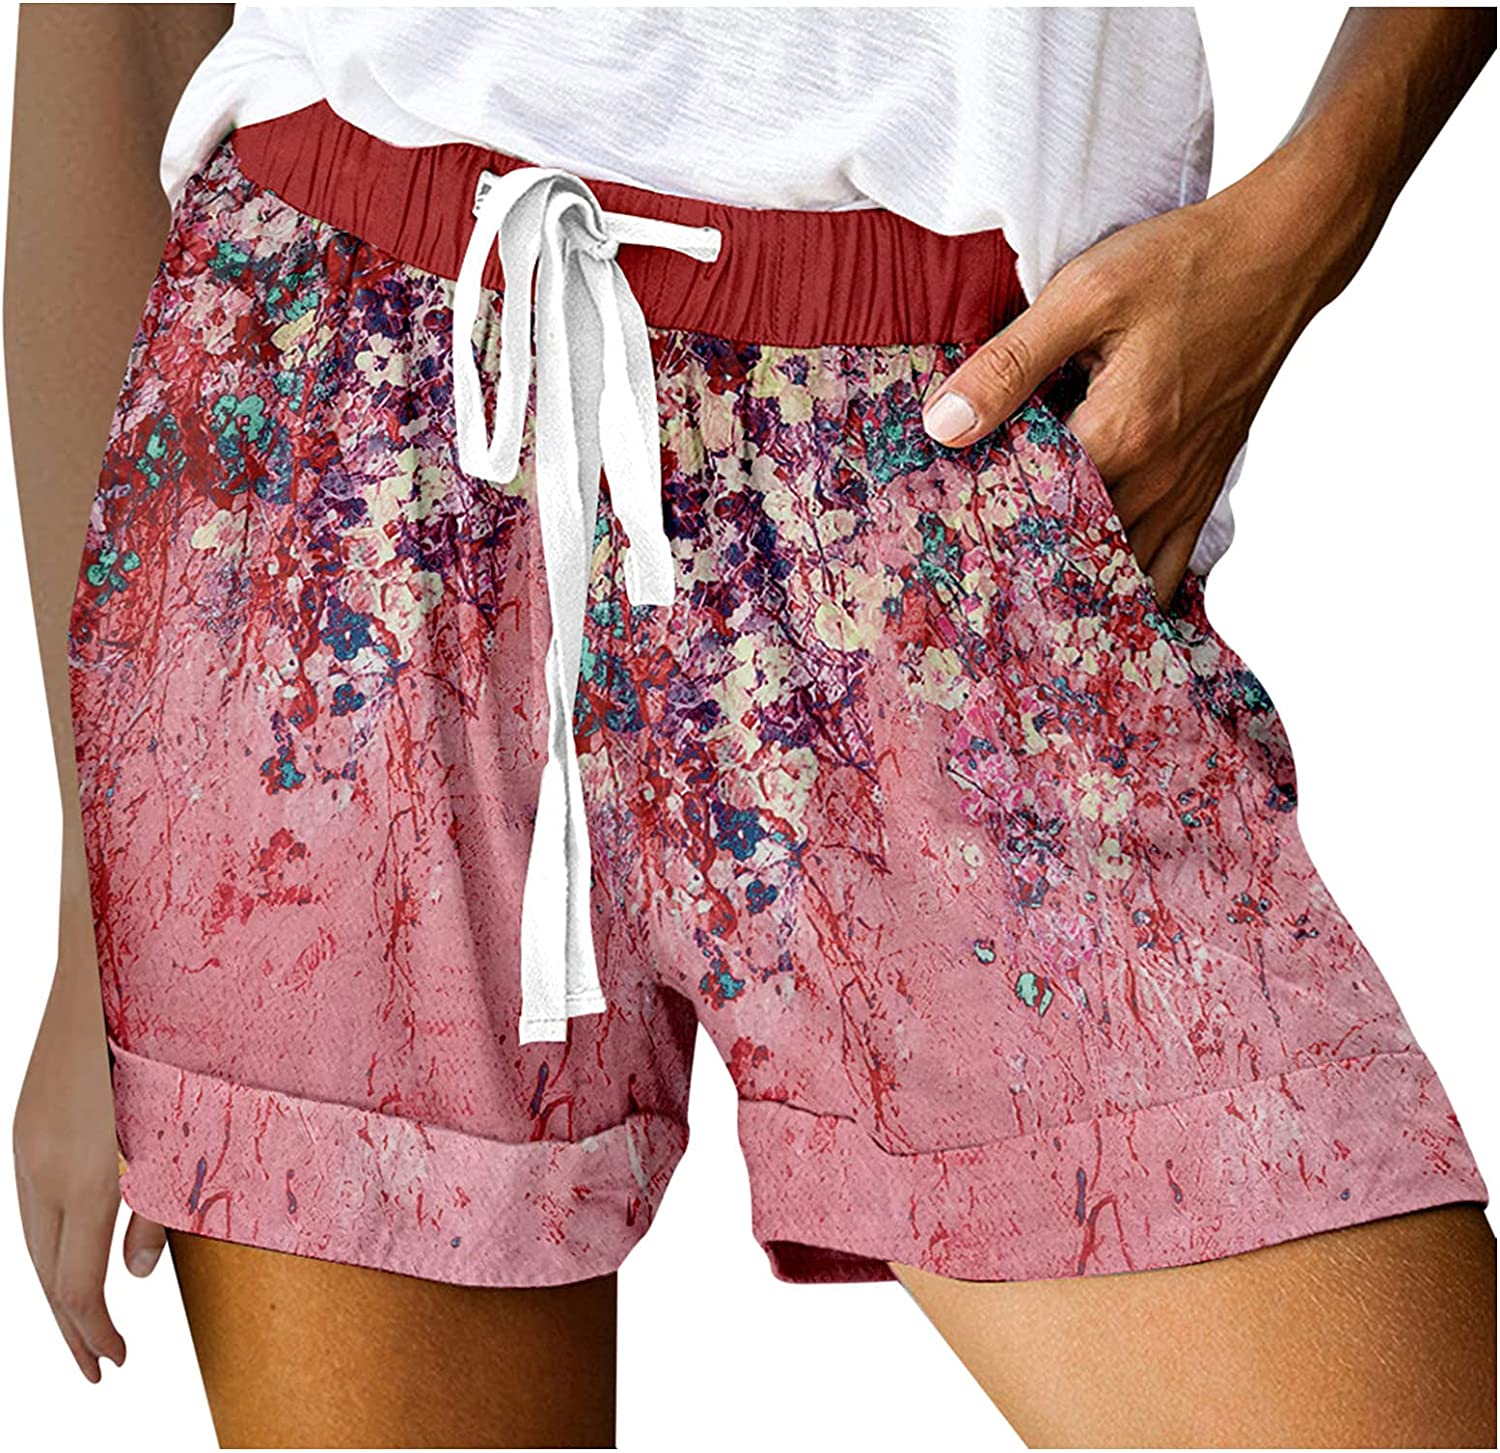 BEUU Womens Summer Casual Drawstring Elastic Waist Comfy Lounge Shorts Boho Floral Athletic Workout Shorts with Pockets